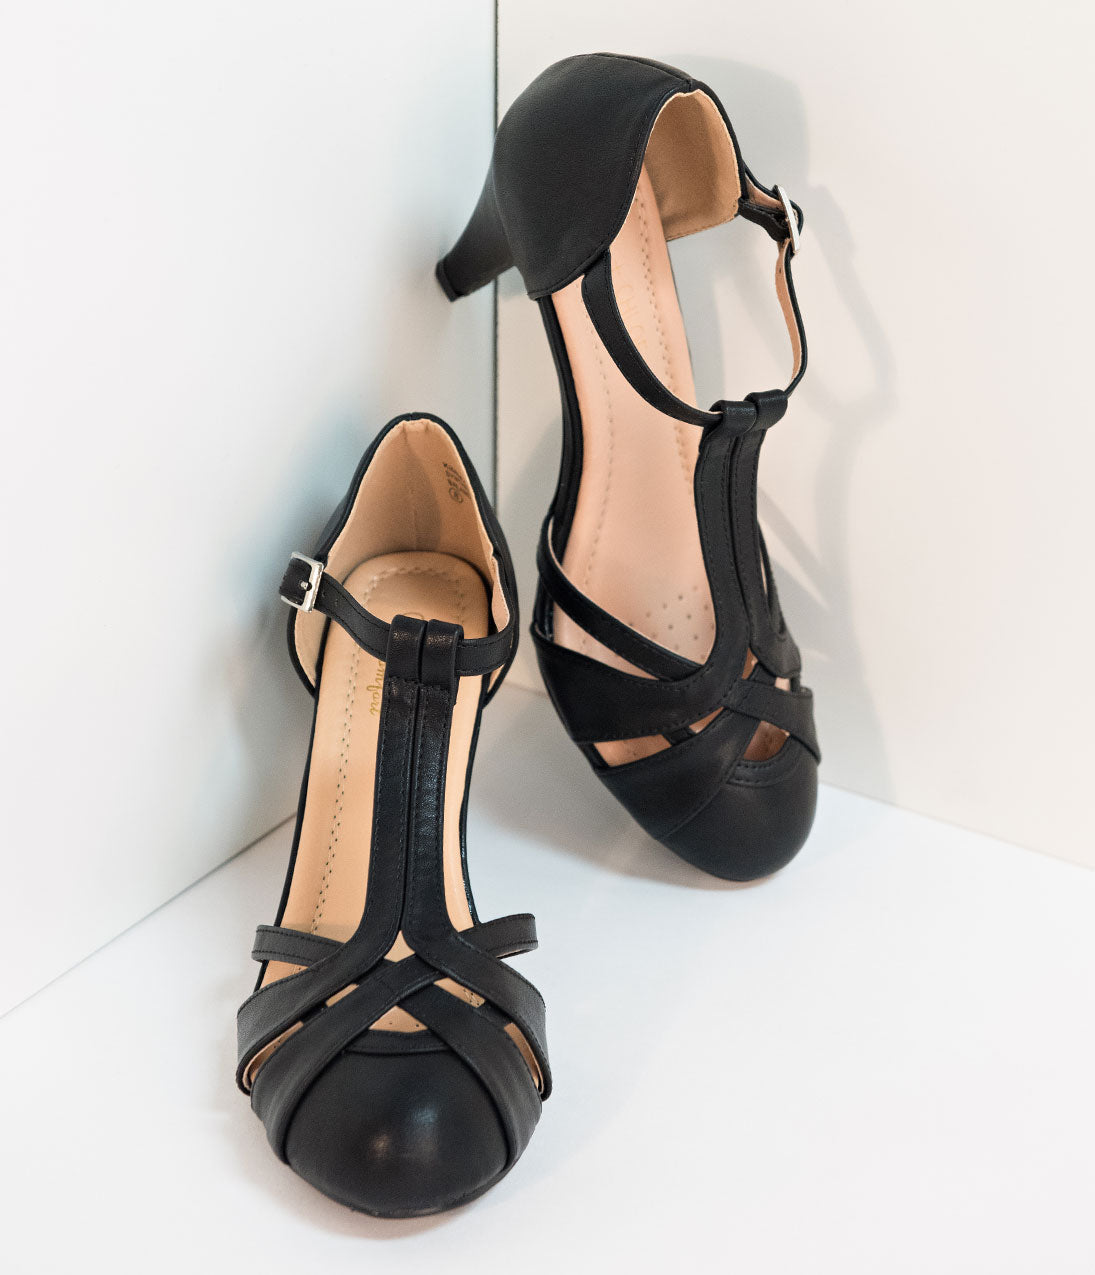 Vintage Style Shoes, Vintage Inspired Shoes Retro Style Black Pleather Cutout Kimmy T-Strap Heels $44.00 AT vintagedancer.com